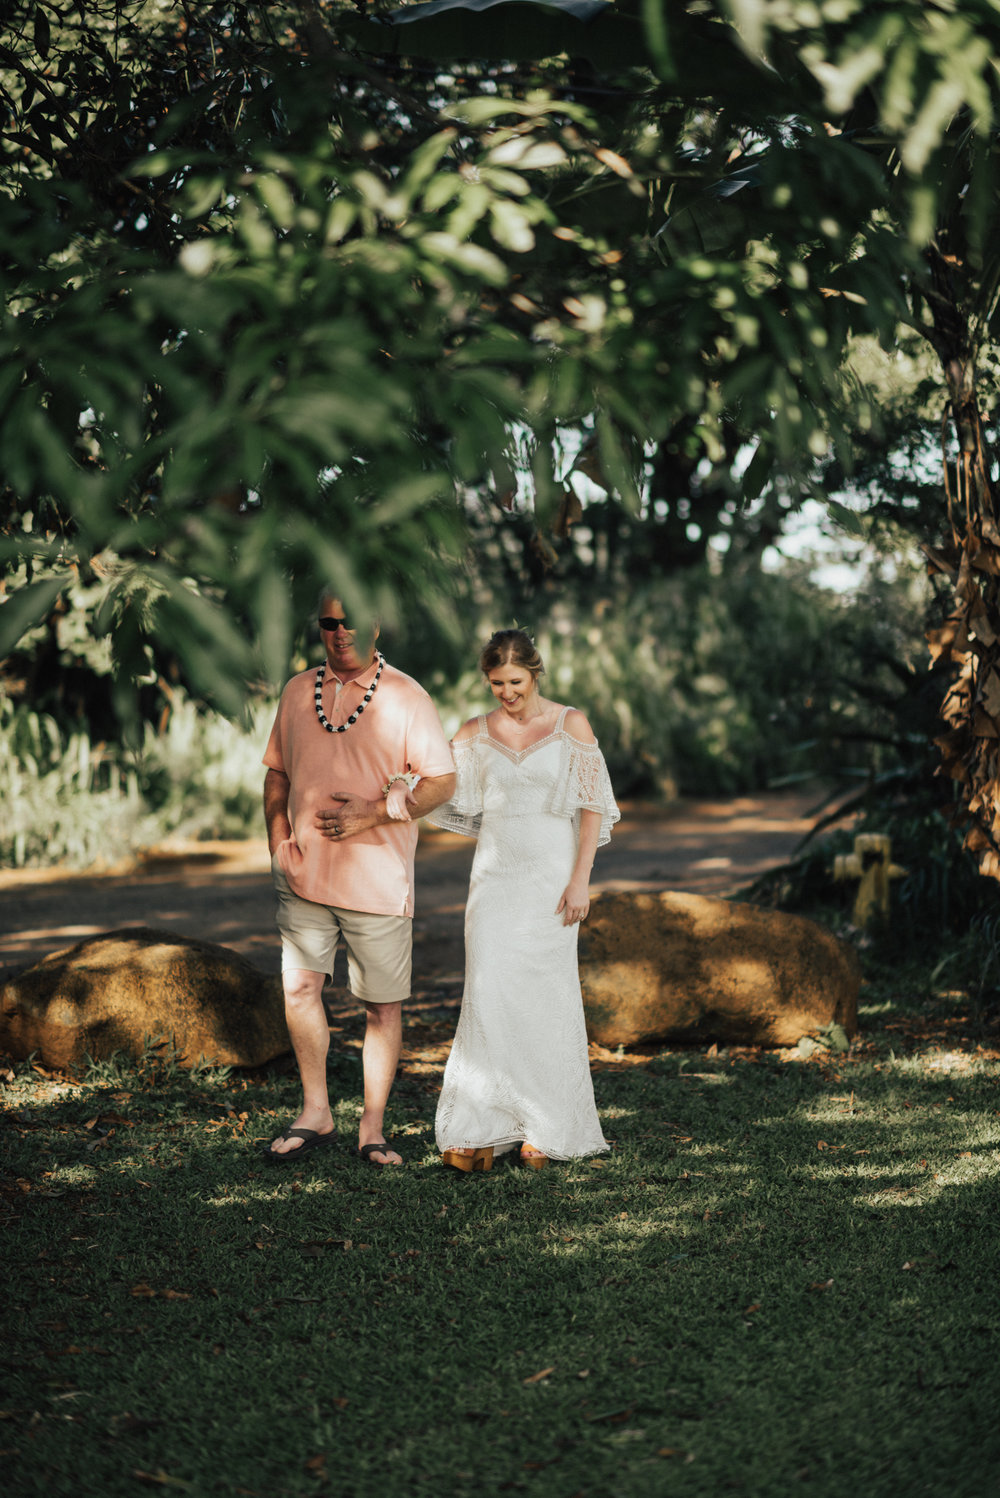 Kauai-elopement-photographer-26.jpg